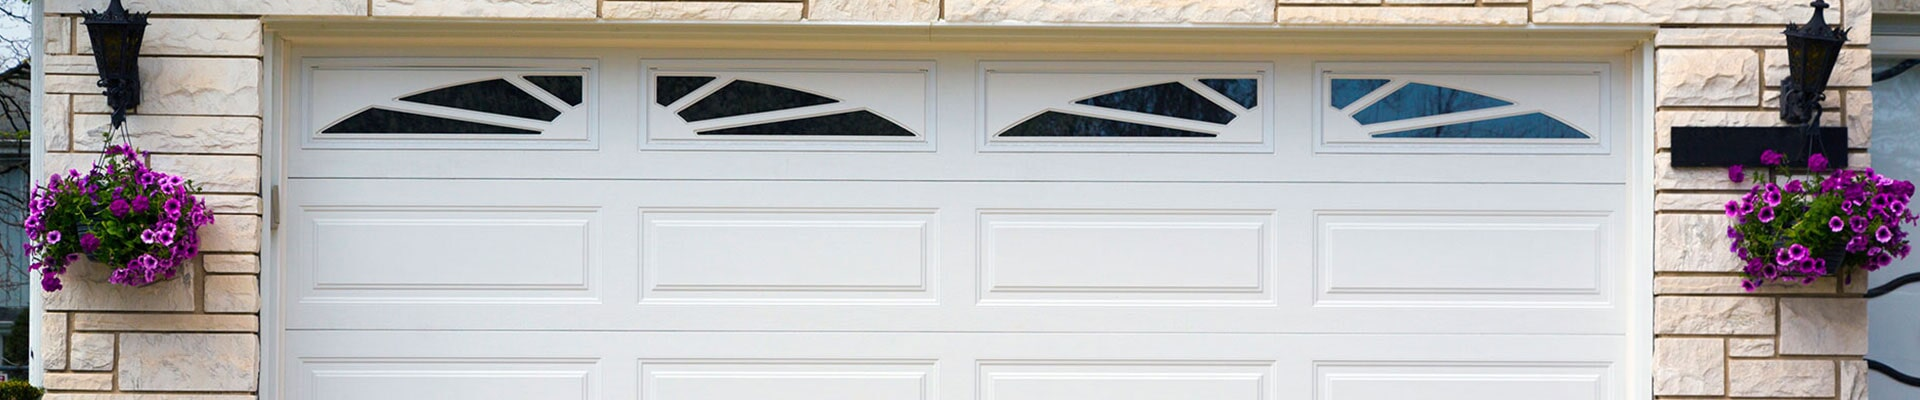 Garage Door Service, Repair And Installation   Hazlet, NJ   Armor Overhead  Door